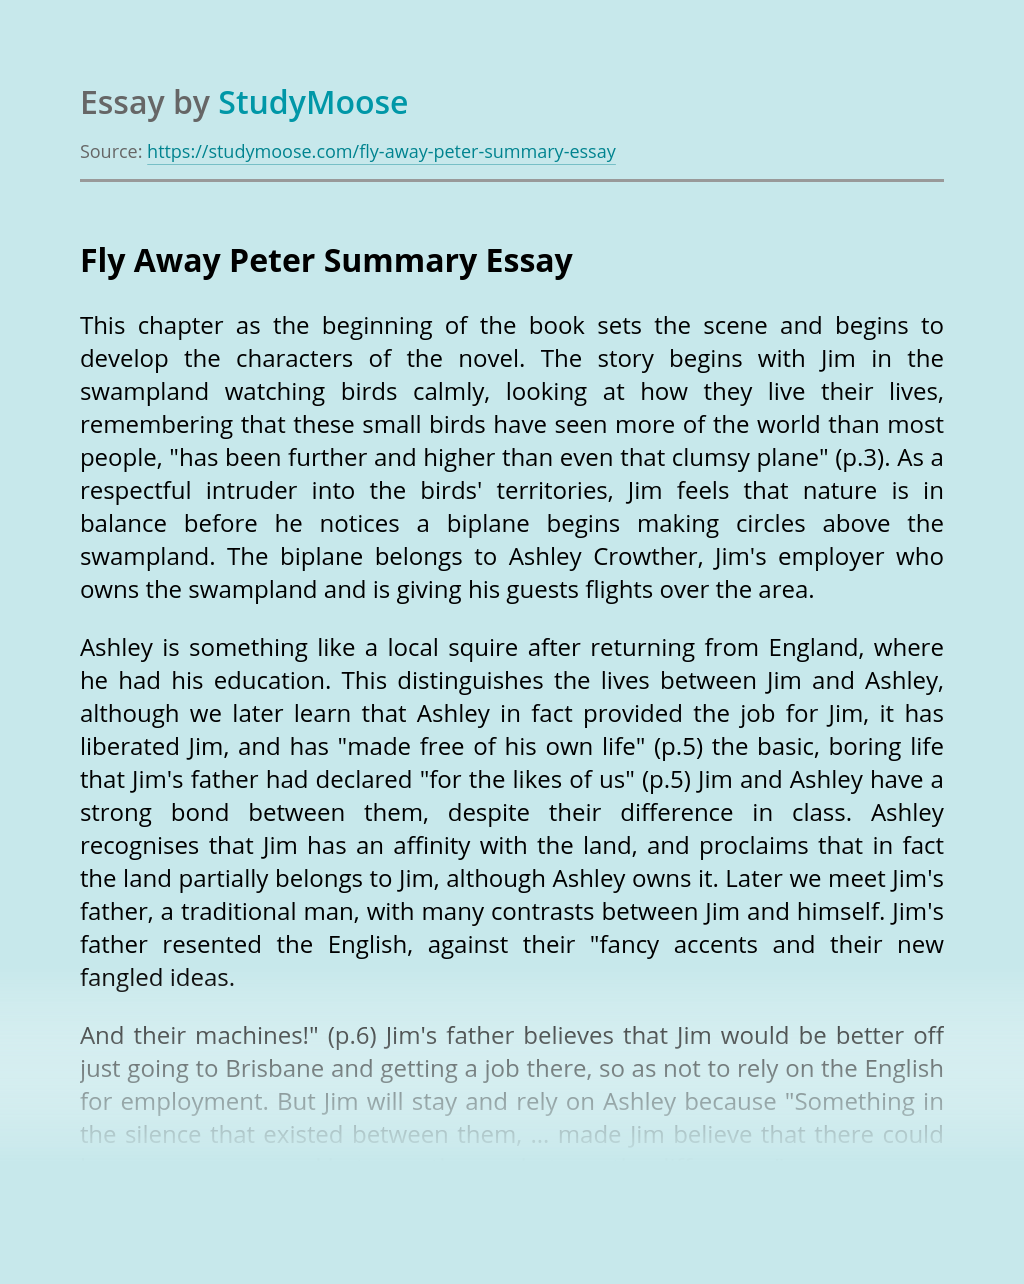 Fly Away Peter Summary